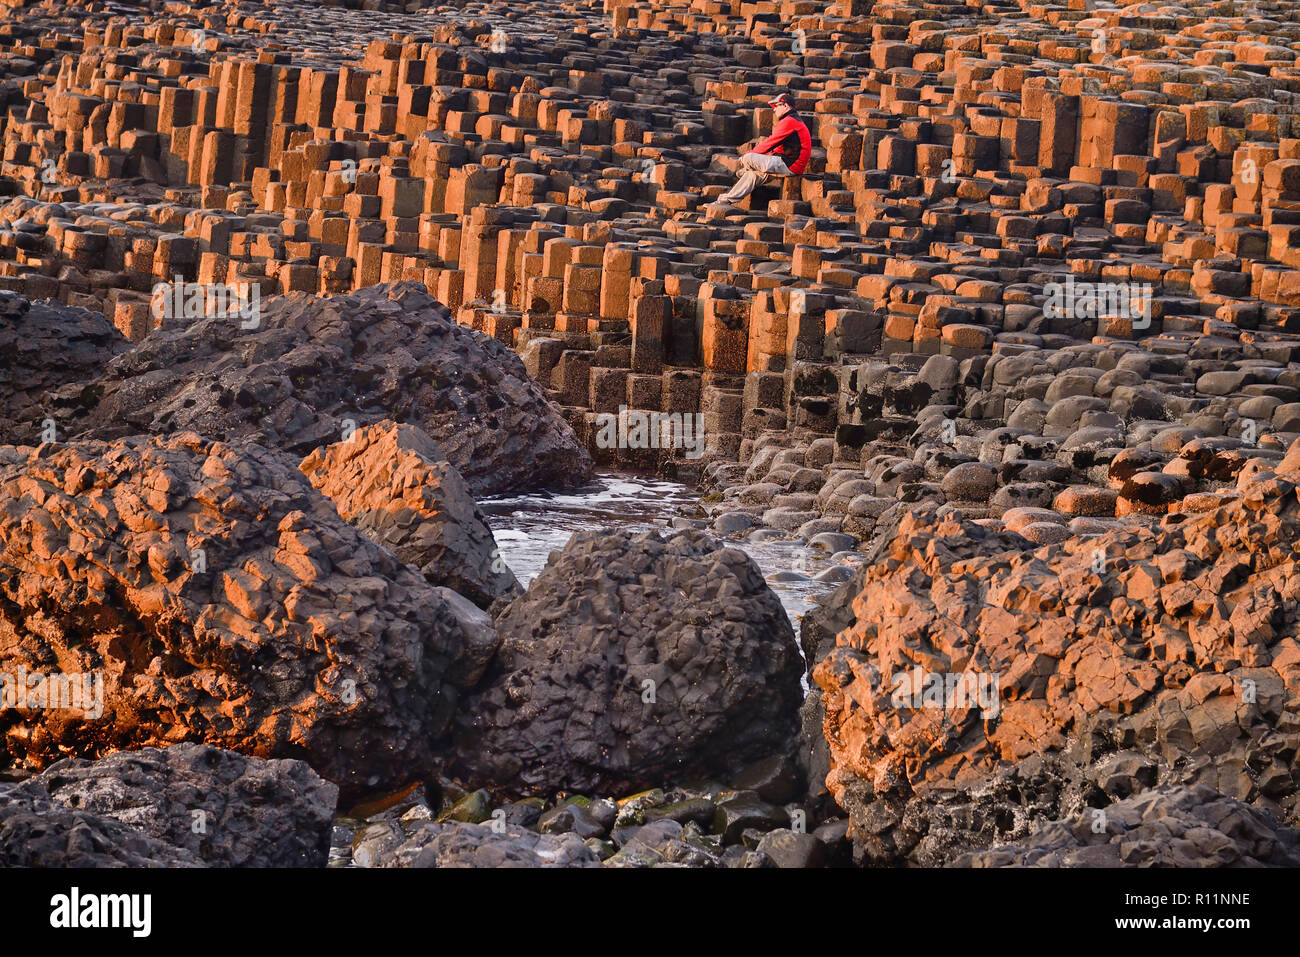 Northern Ireland, County Antrim, Giants Causeway, a tourist sitting among the rocks admiring the view. - Stock Image